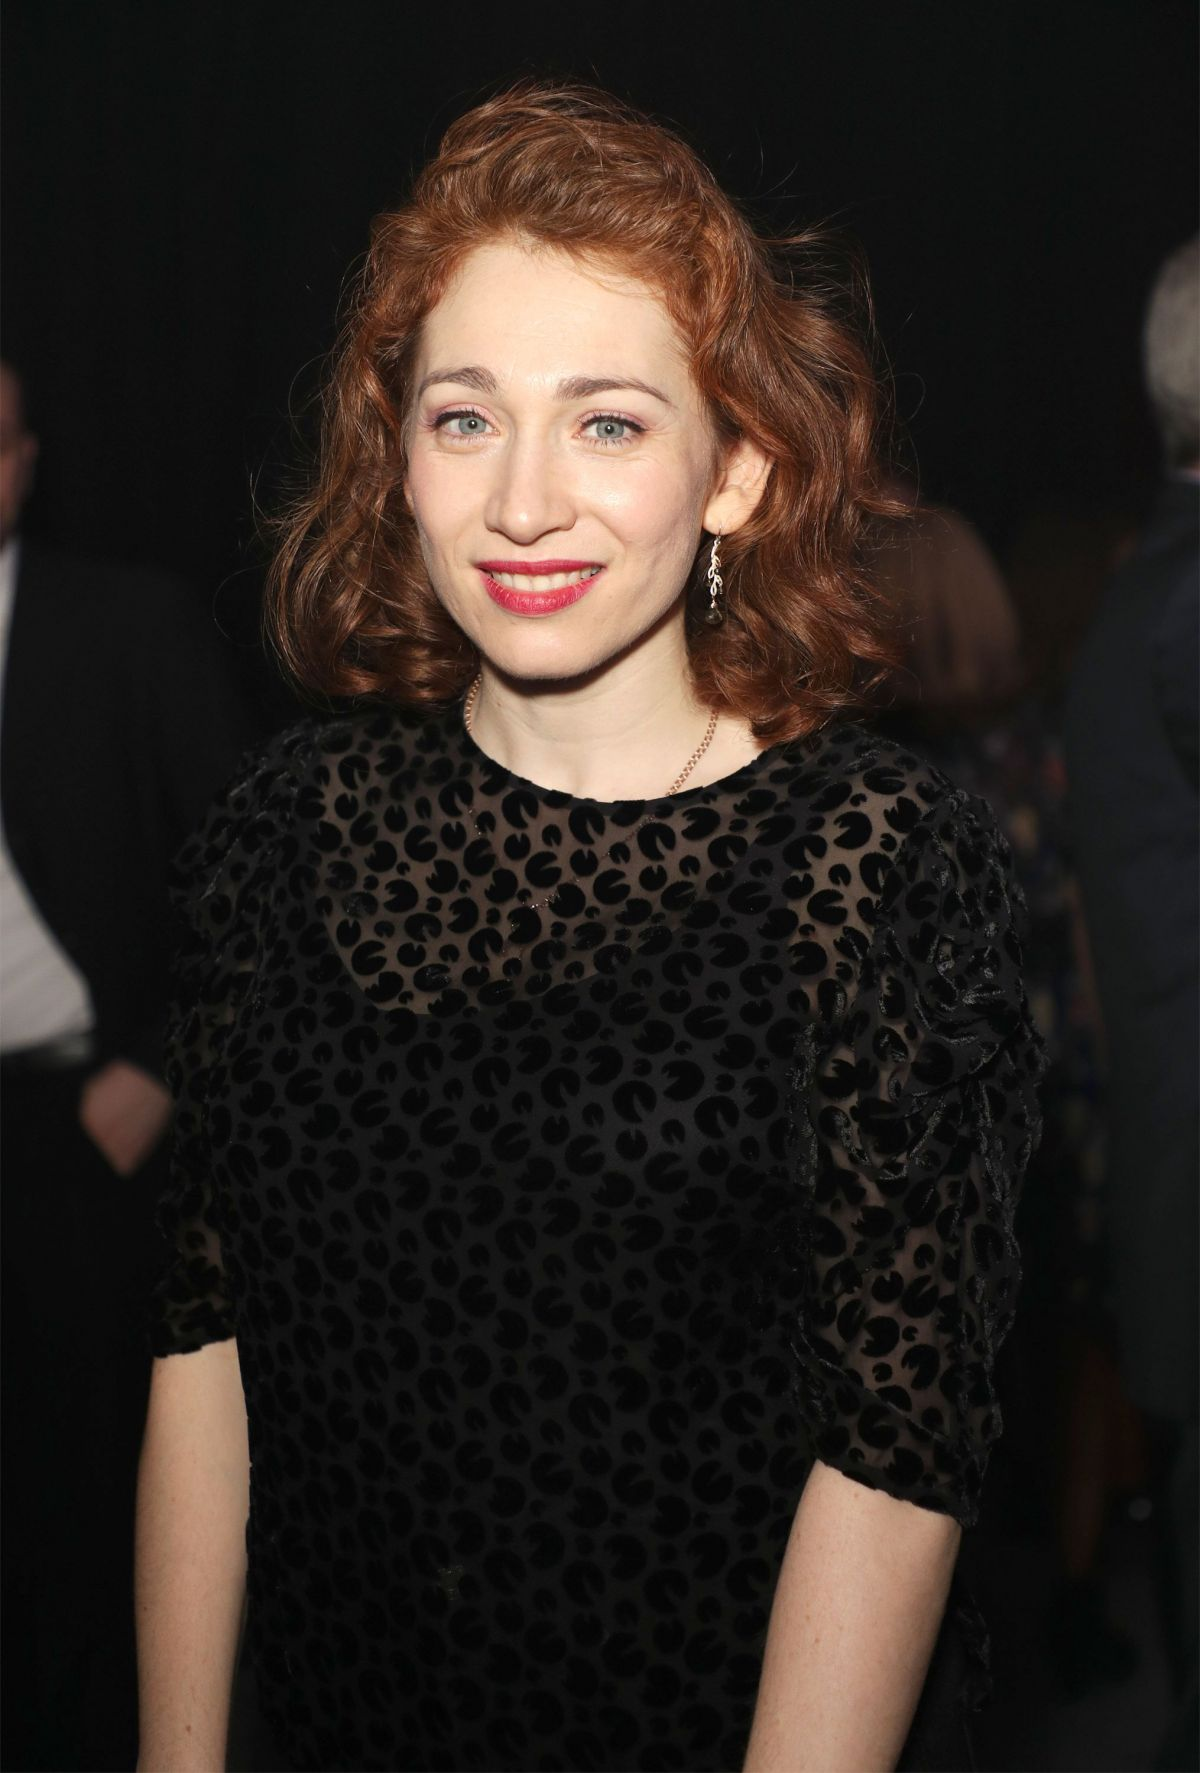 REGINA SPEKTOR at Universal Music Group Grammy Afterparty in Los Angeles 02/12/2017